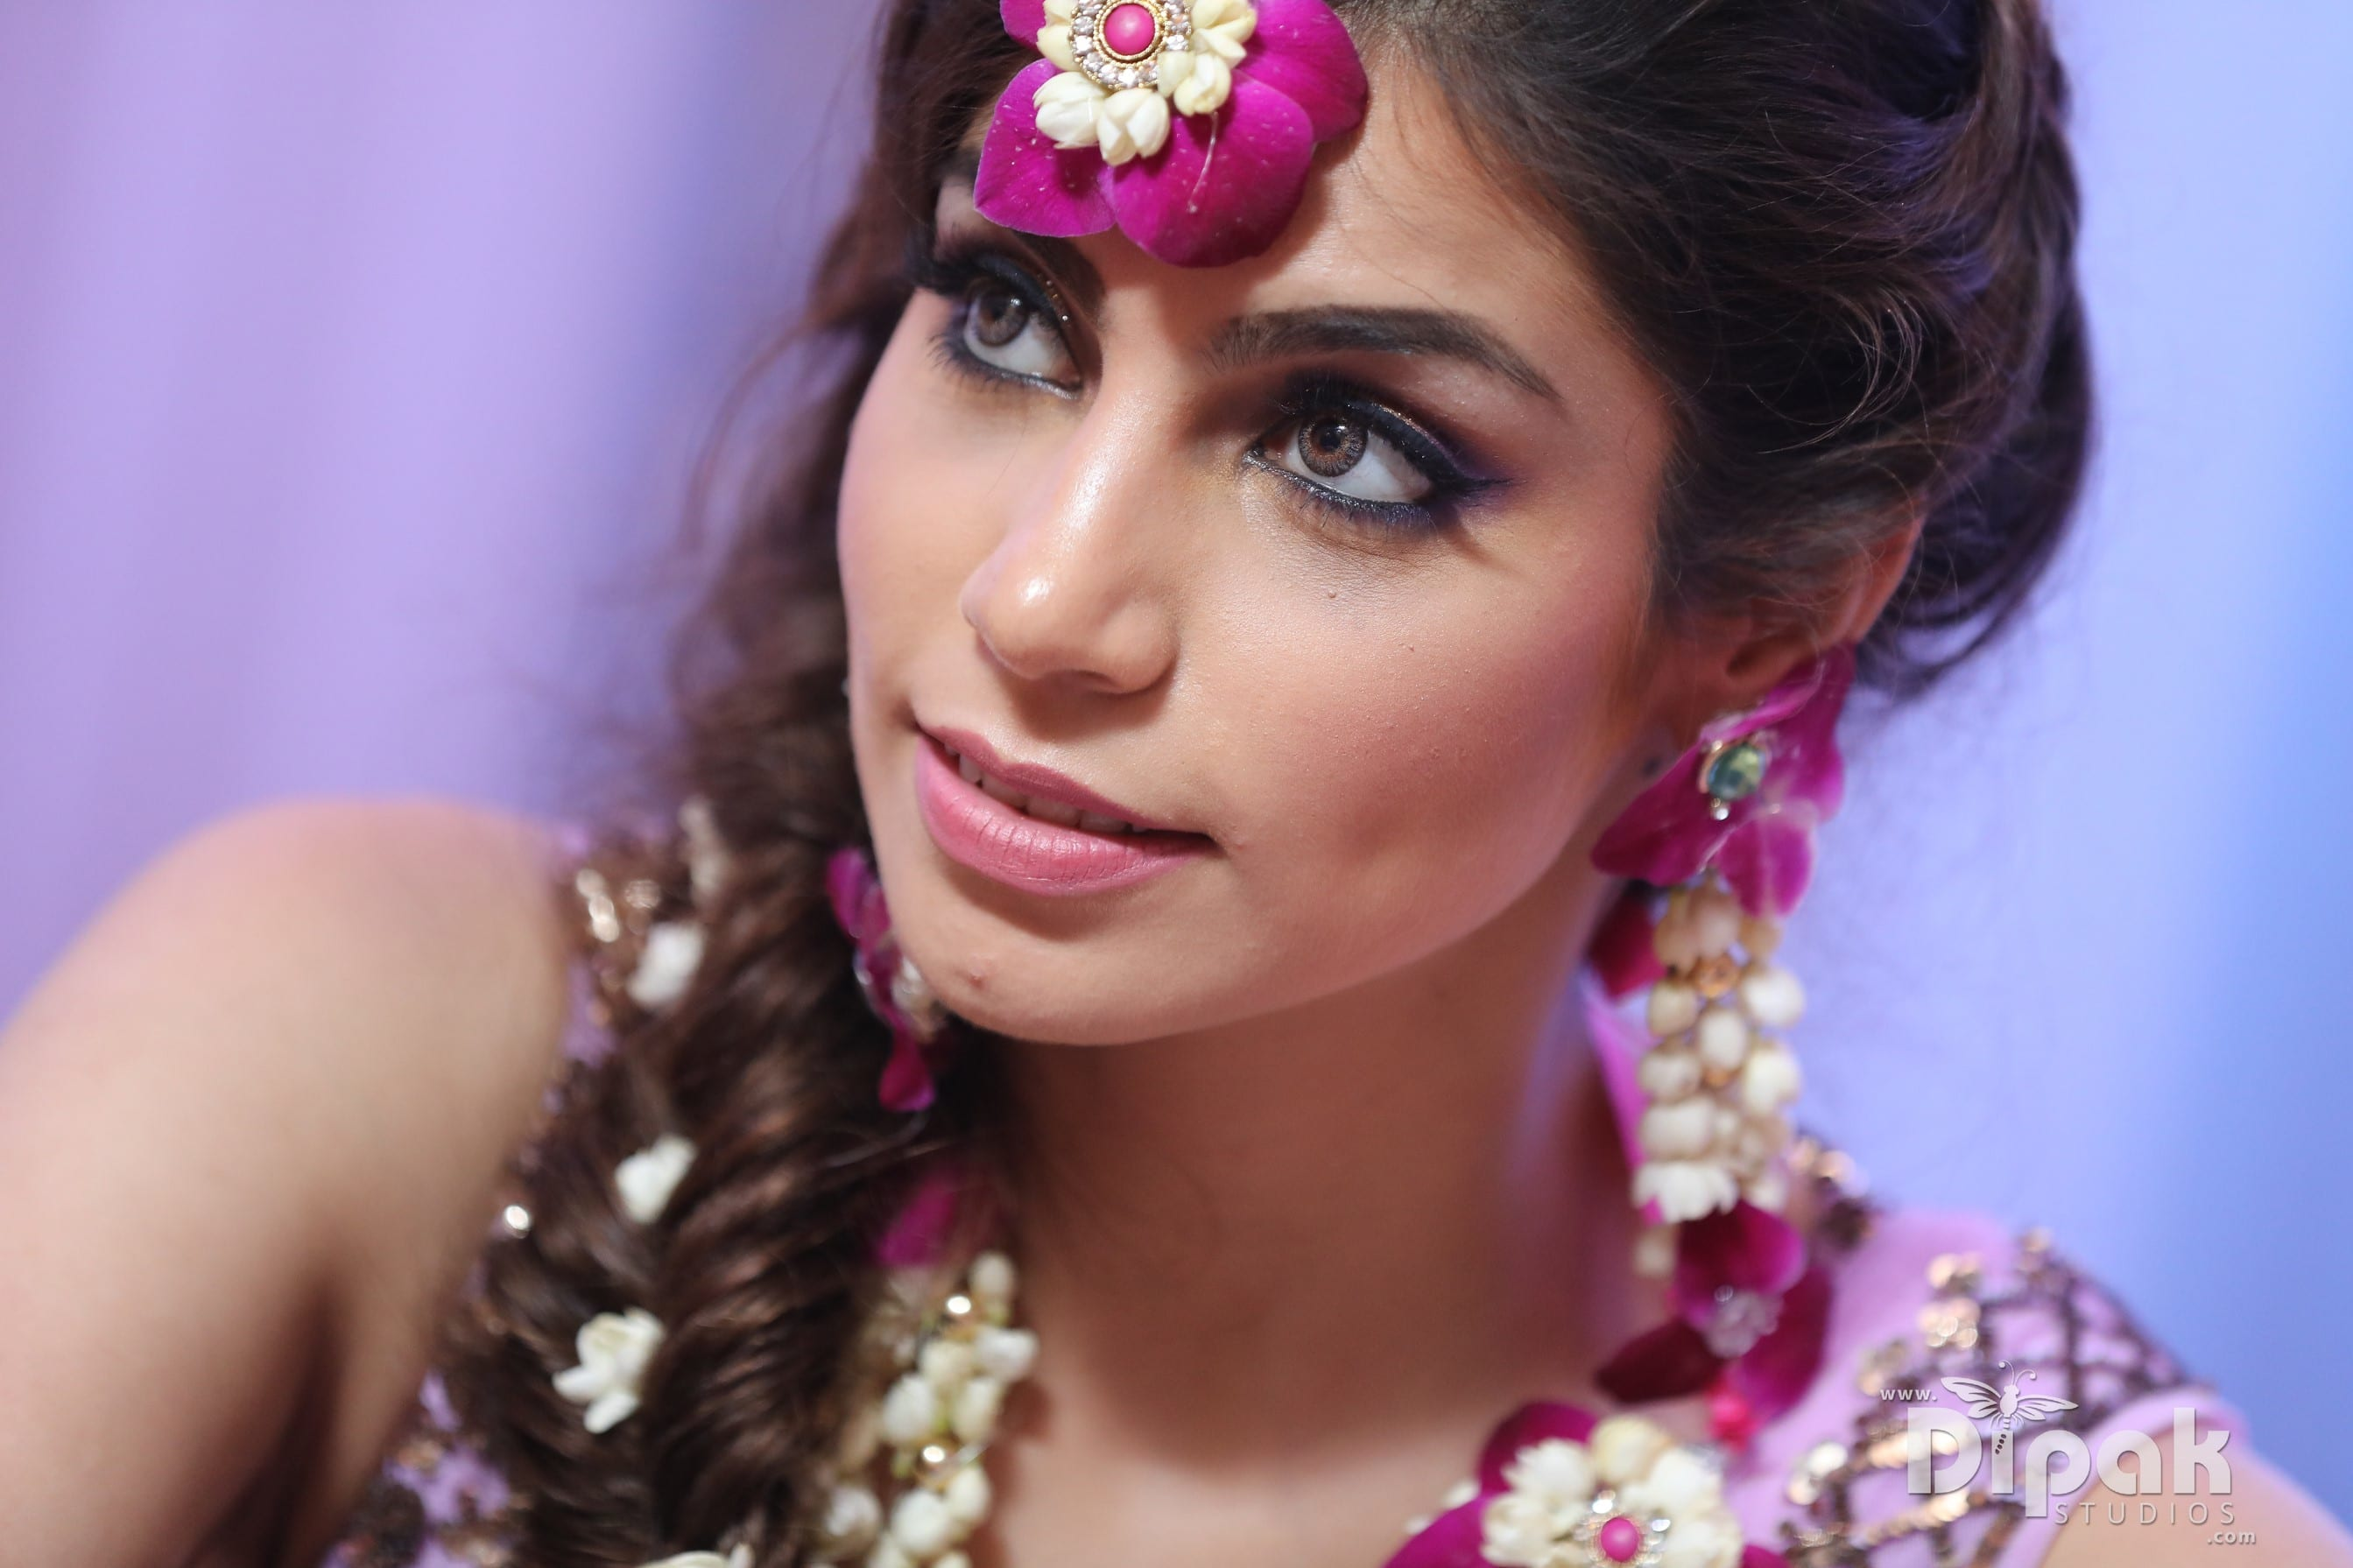 the bride!:orana hotels and resorts, dipak studios wedding photography